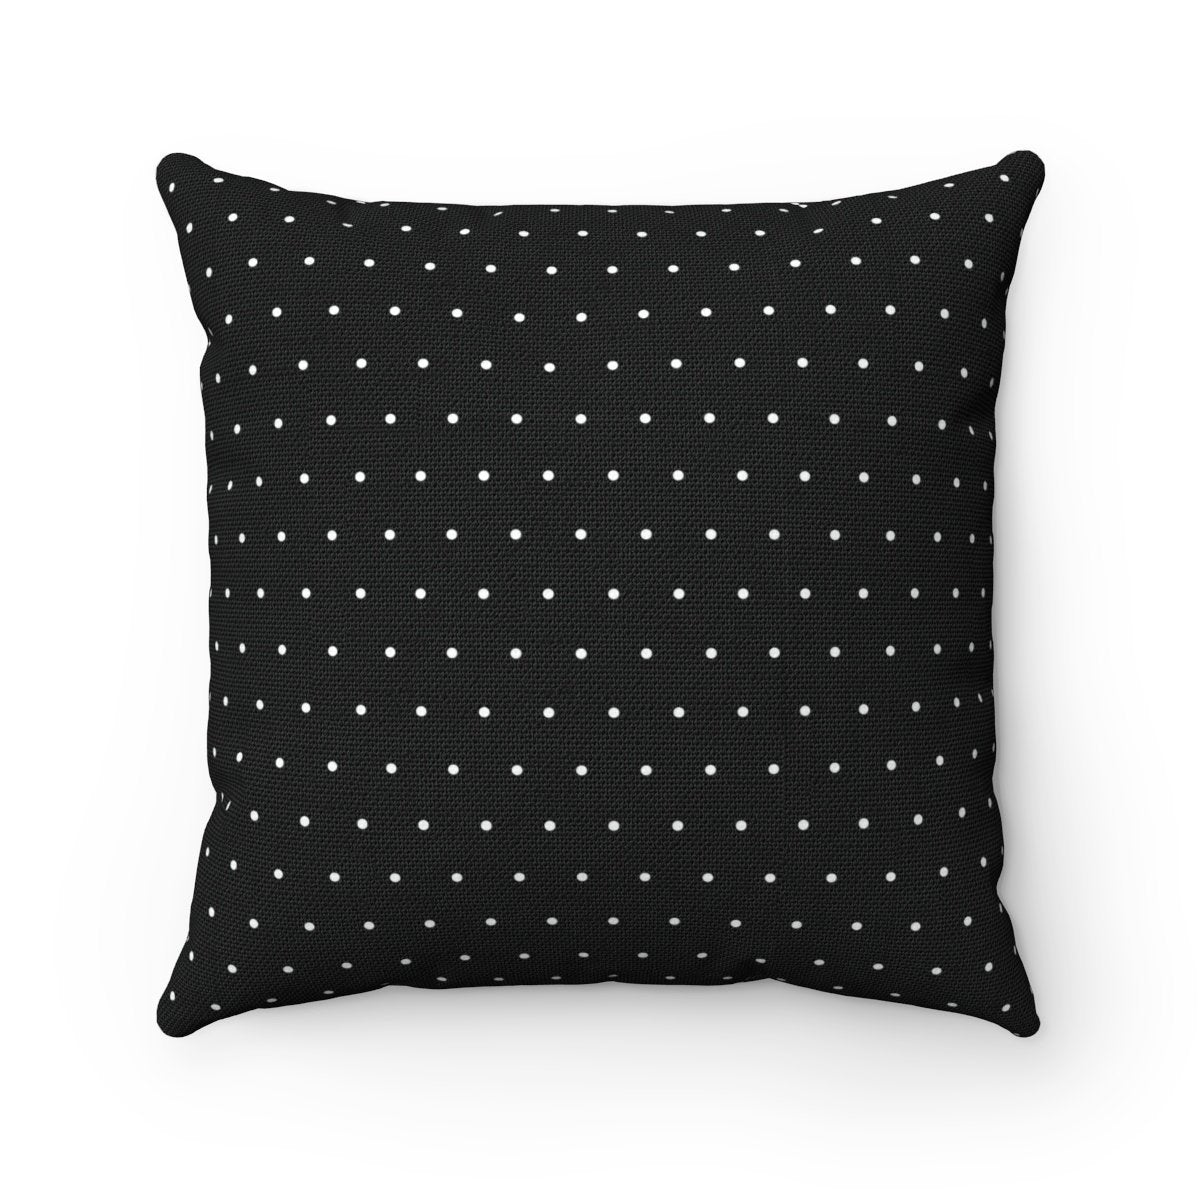 Black and white polka dots decorative cushion cover-Home Decor - Decorative Accents - Pillows & Throws - Decorative Pillows-Maison d'Elite-14x14-Très Elite